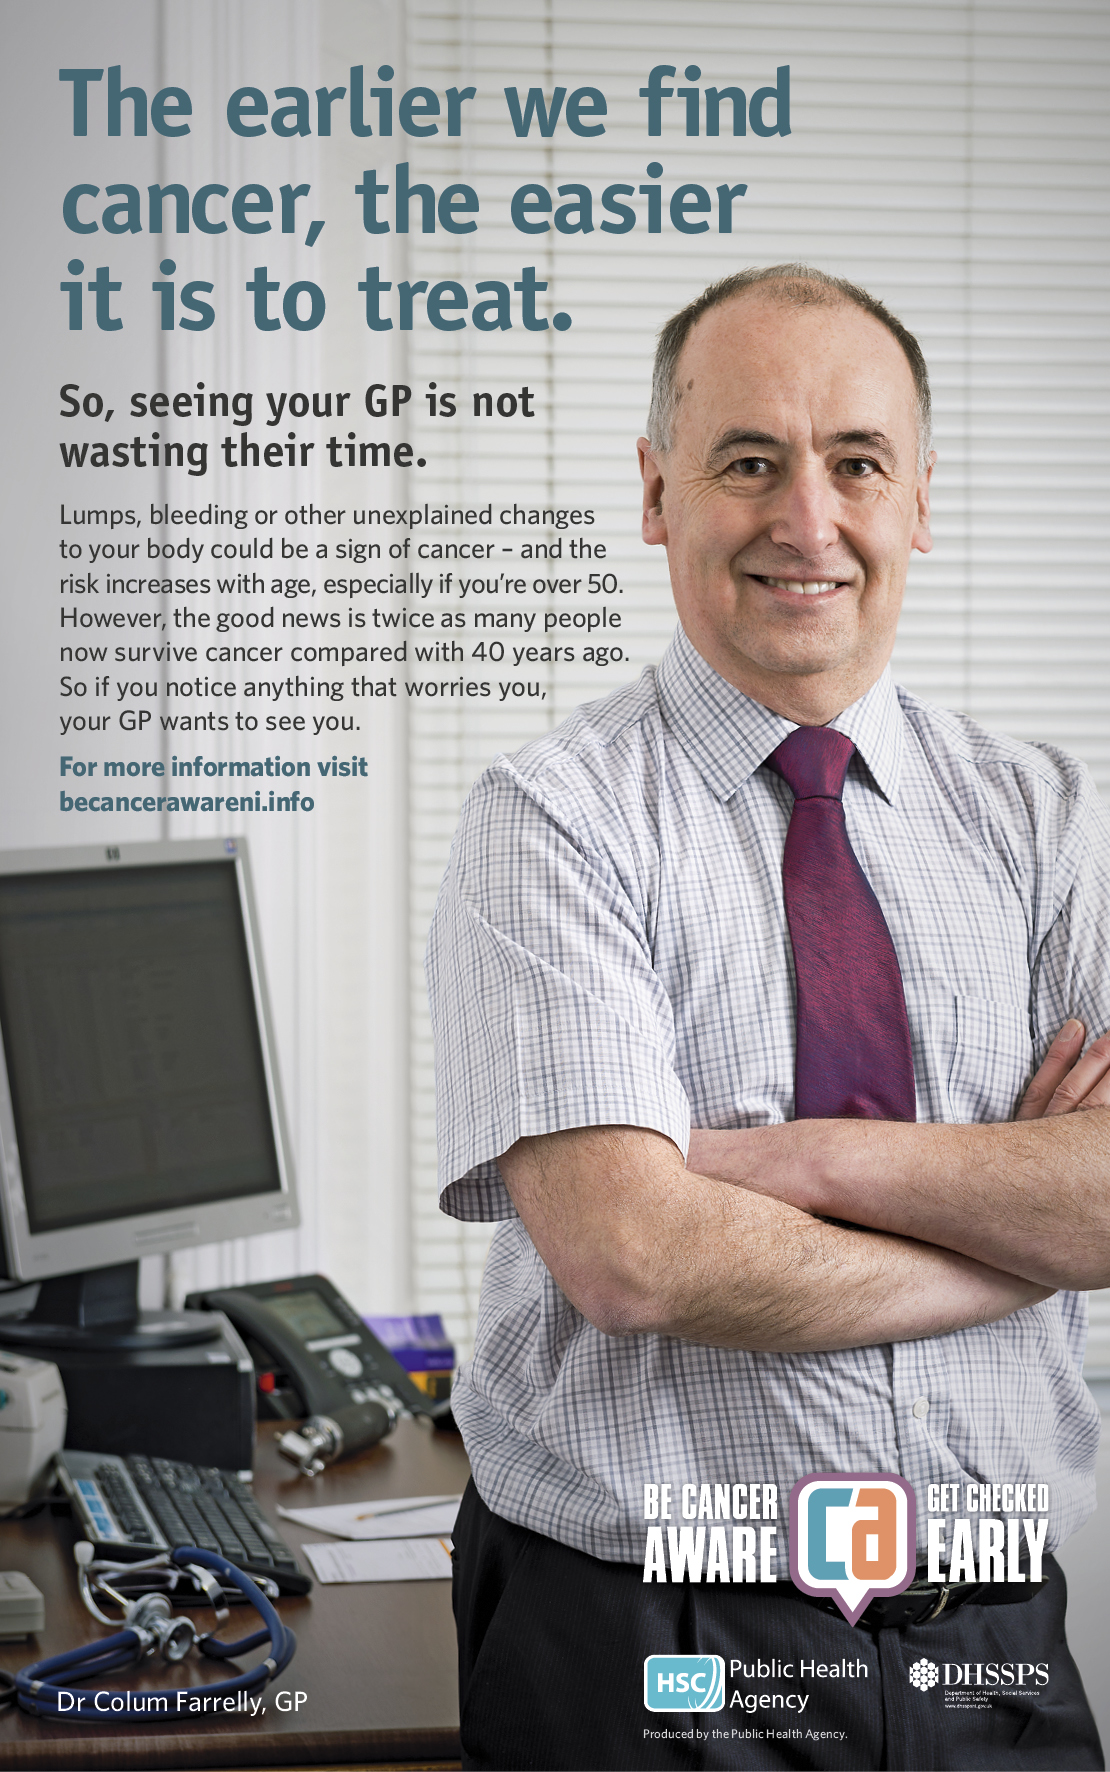 Be Cancer Aware poster featuring Dr Colum Farrelly, GP